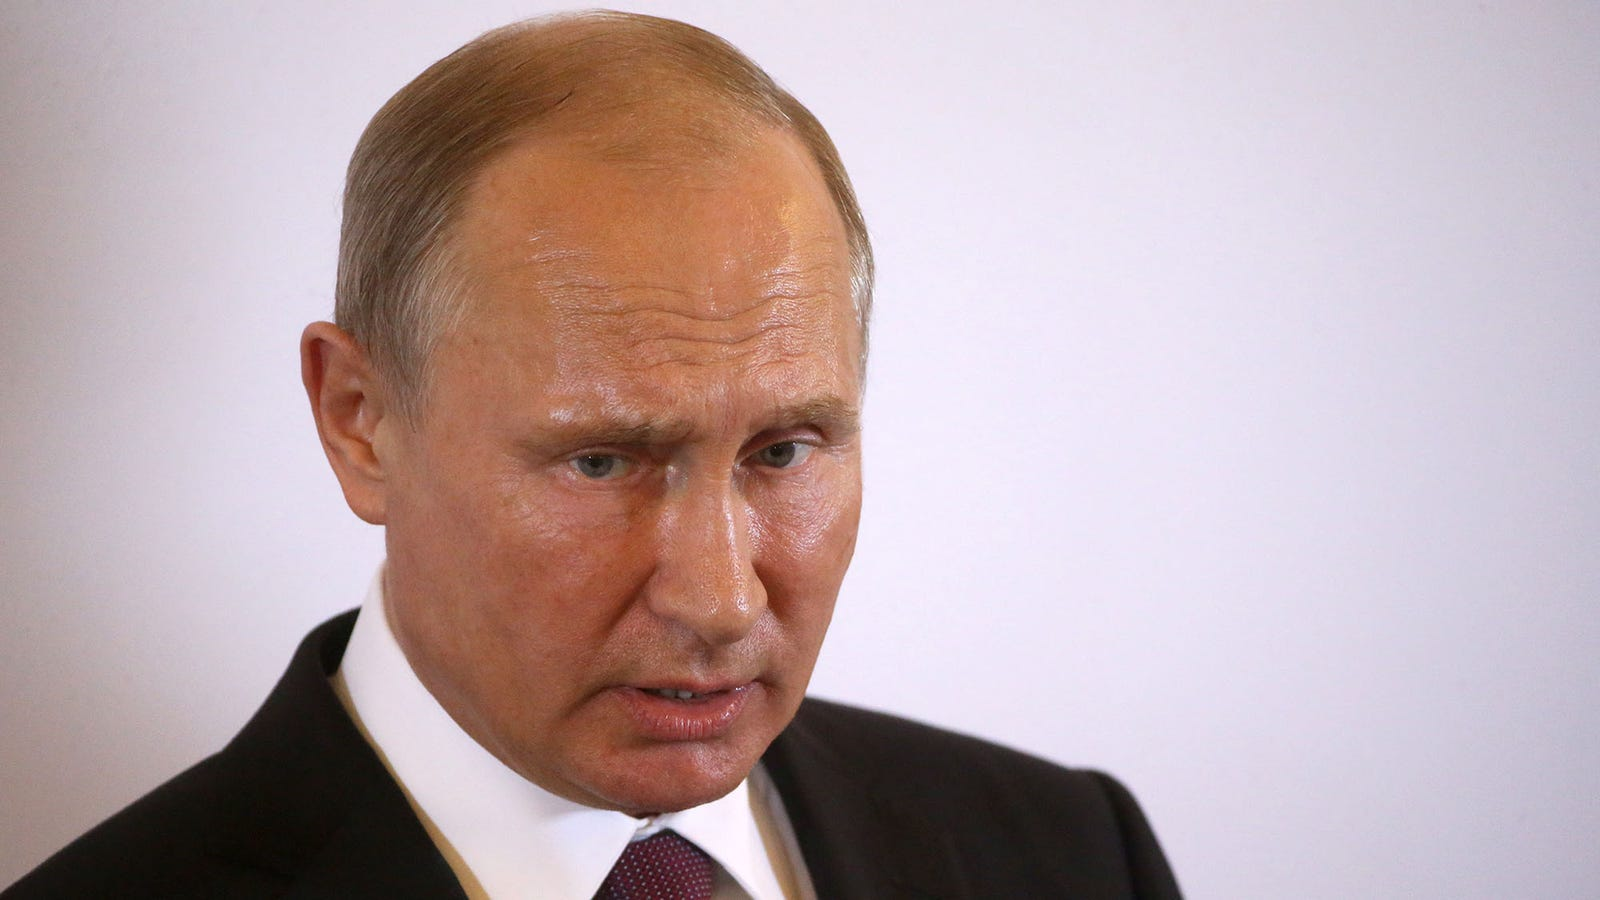 Shocked Vladimir Putin Slowly Realizing He Didn't Conspire With Trump Campaign